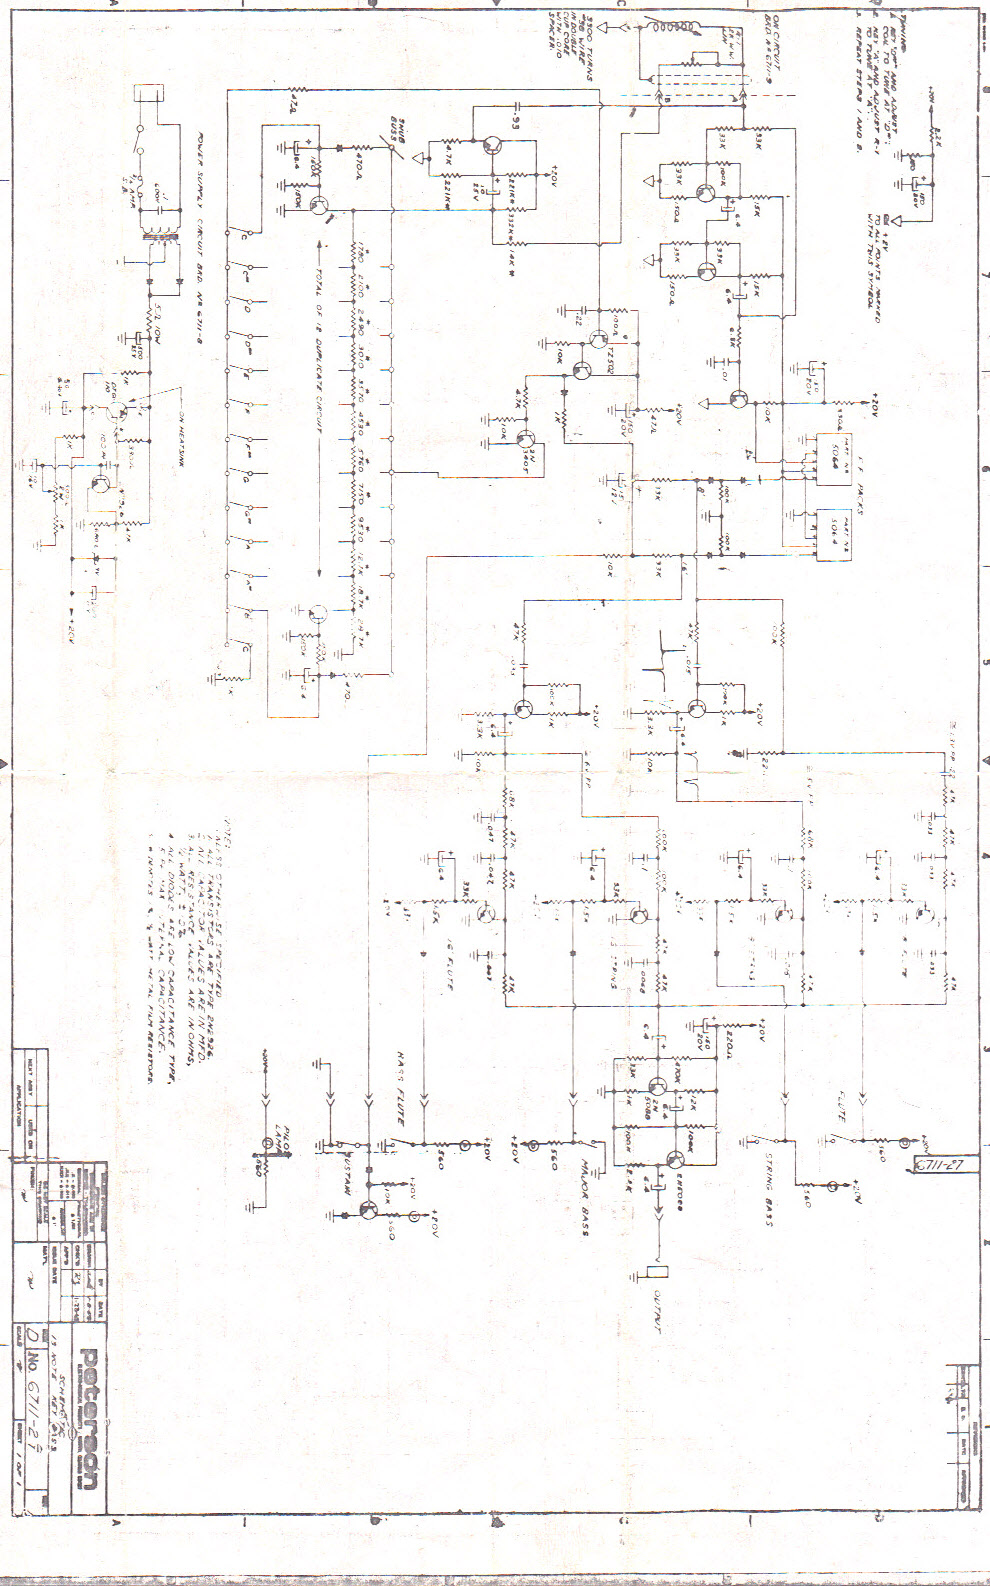 MATRIXSYNTH: Schematic for Fender Bass Pedals